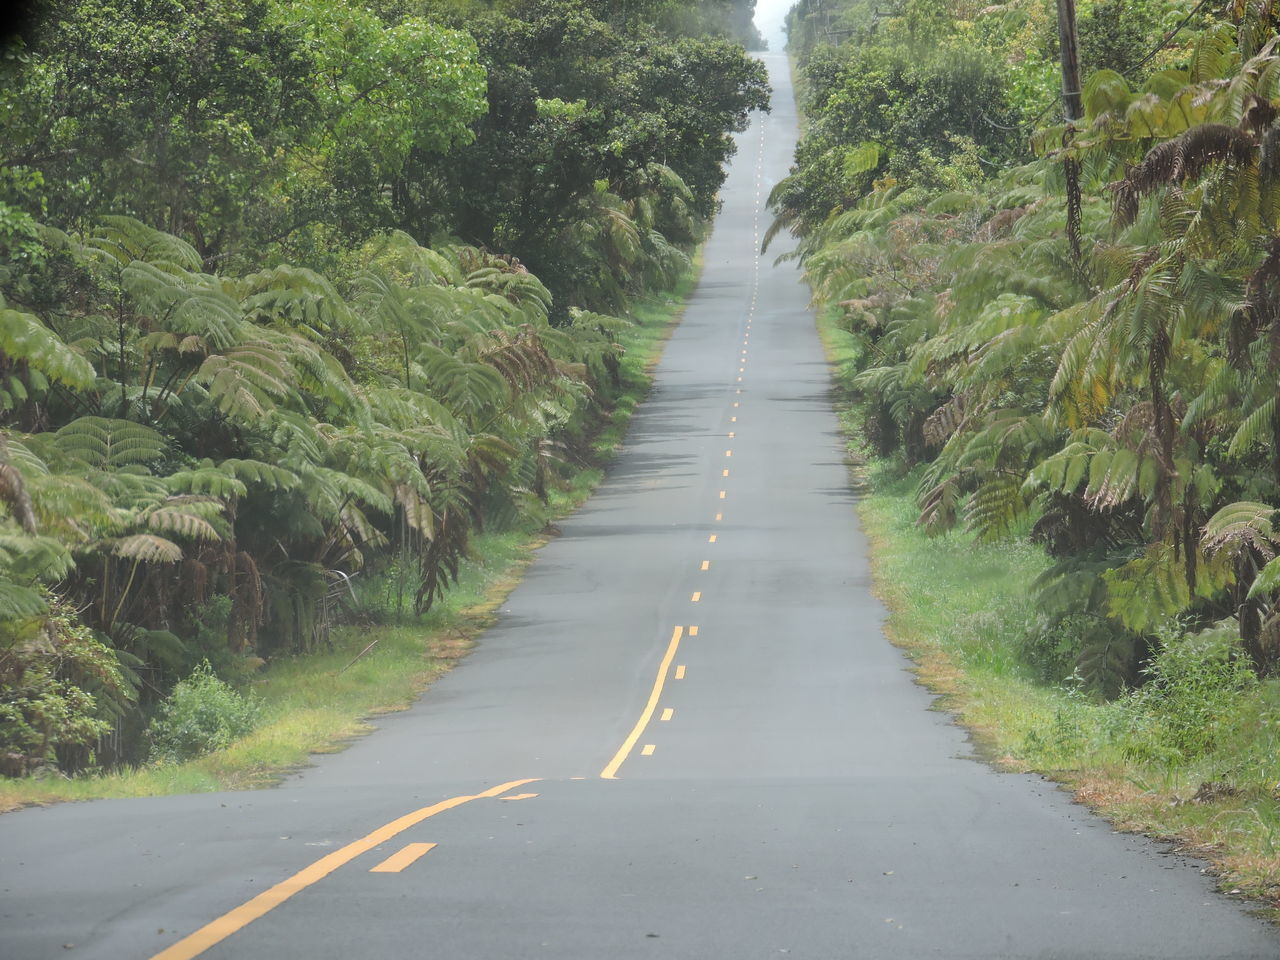 Day Nature No People Outdoors Plant Road The Way Forward Transportation Tree White Line